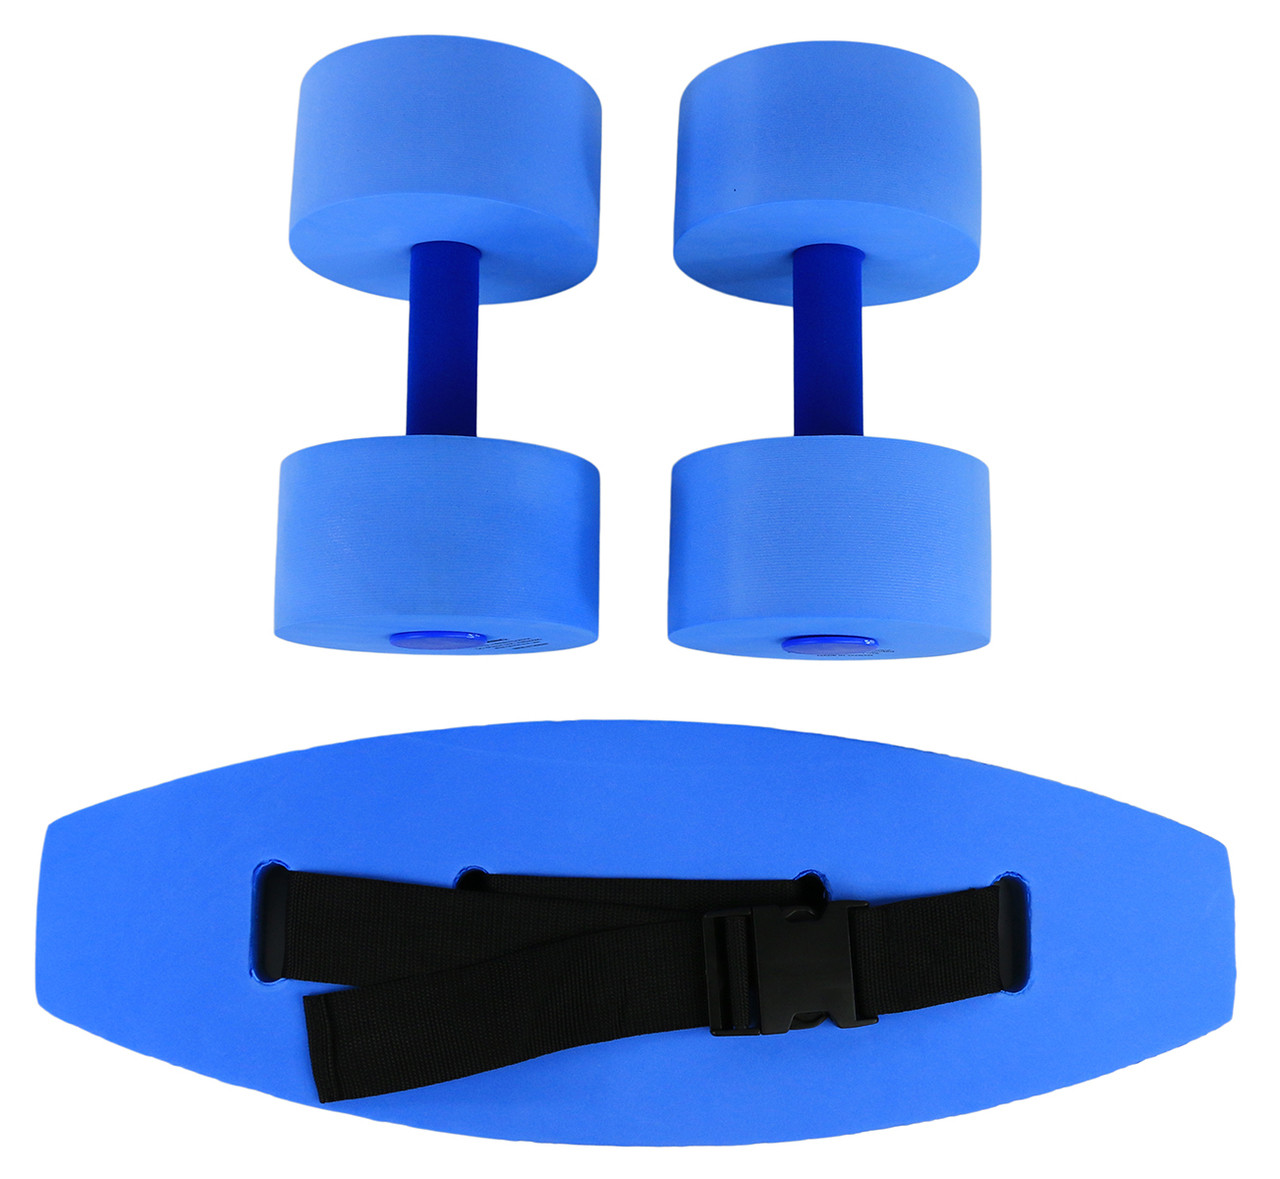 CanDo¨ aquatic exercise kit, (jogger belt, hand bars) small, blue